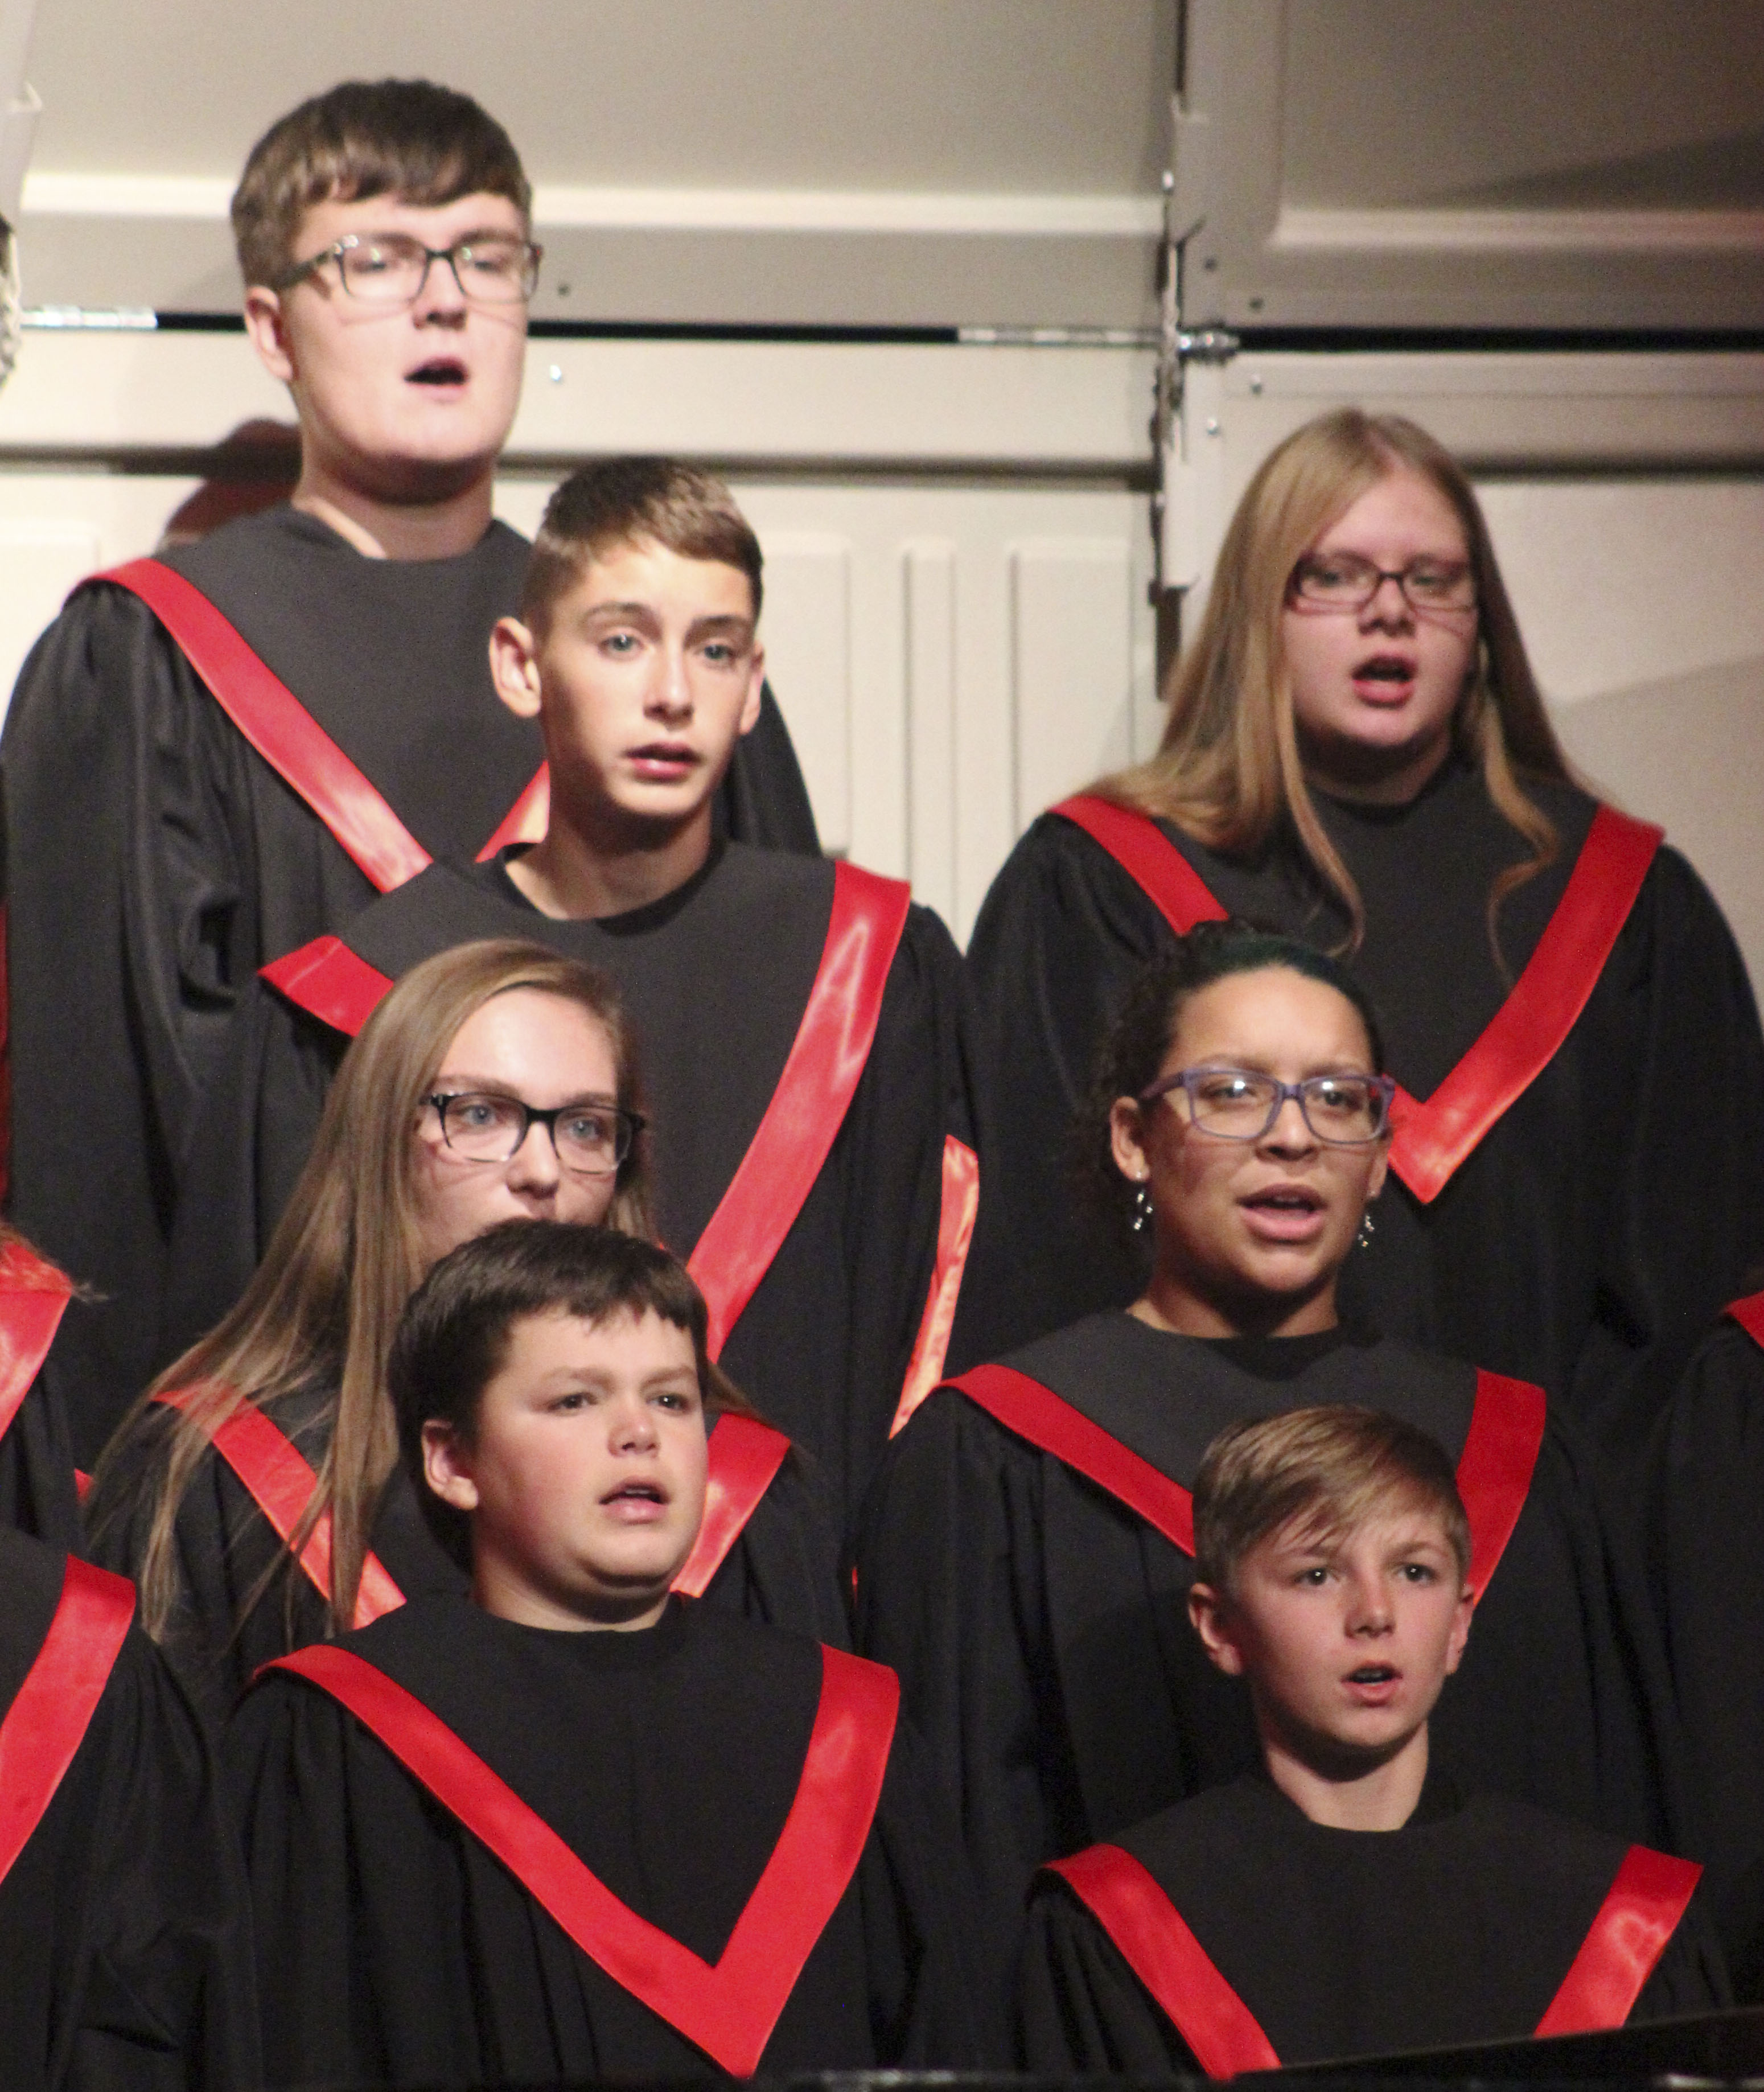 Members of the Mixed and Concert Choirs sing at the Oct. 17 concert. They include, clockwise from top: Will Dotterweich, Kadence Barnhart, Yasmin Al-Ansar Arnold, Chesney Capron, Zach Reuter, Marisa Grant and Noah Webber. (Photos by Pete Temple)